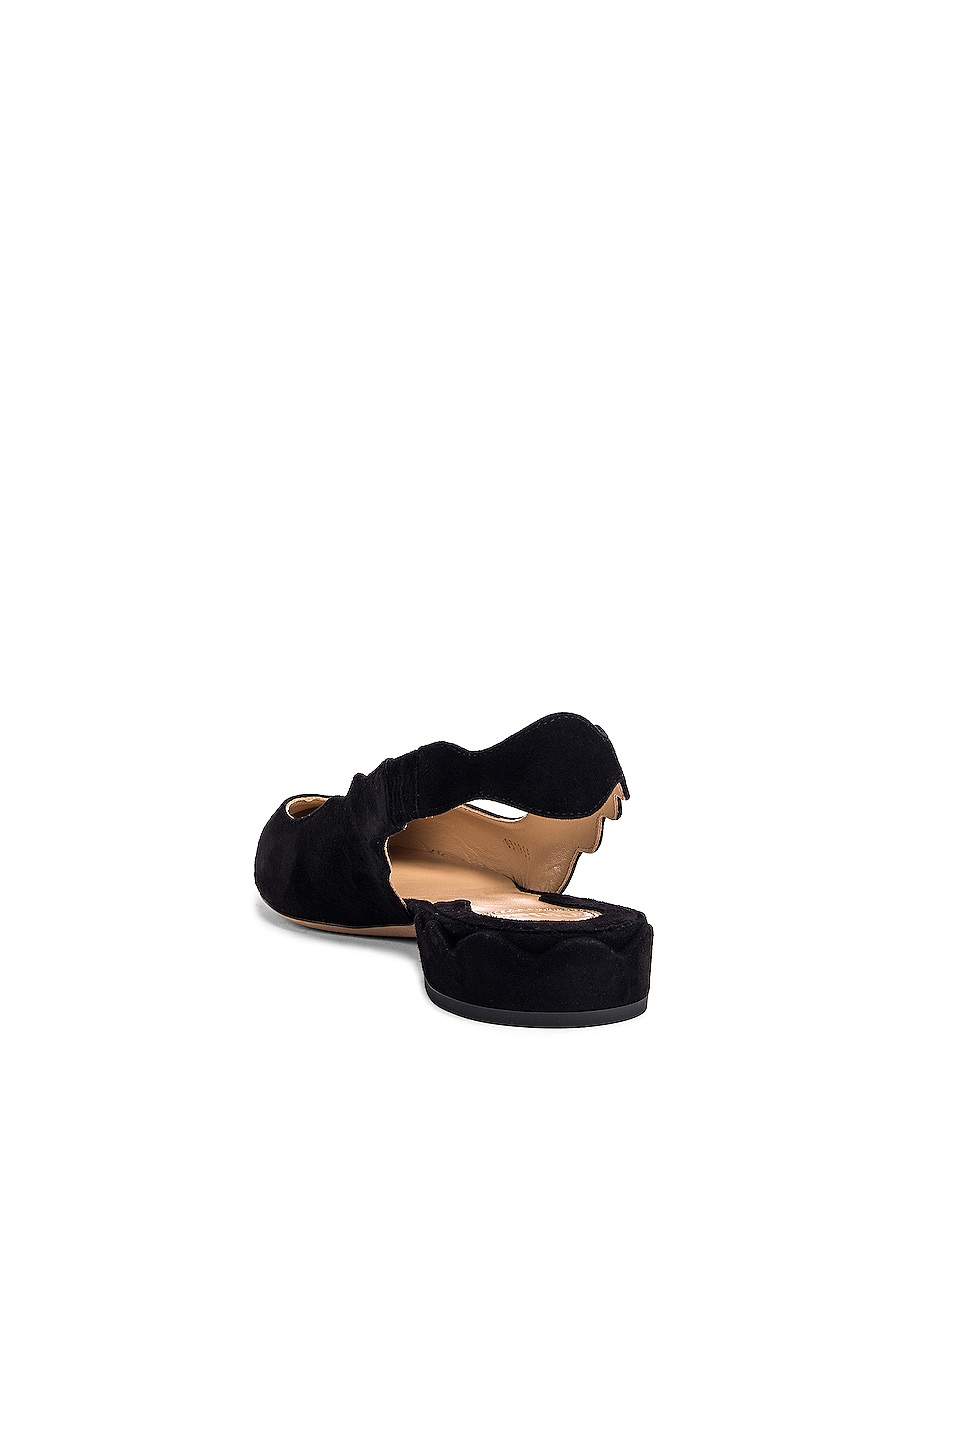 Image 3 of Chloe Laurena Slingback Flats in Black